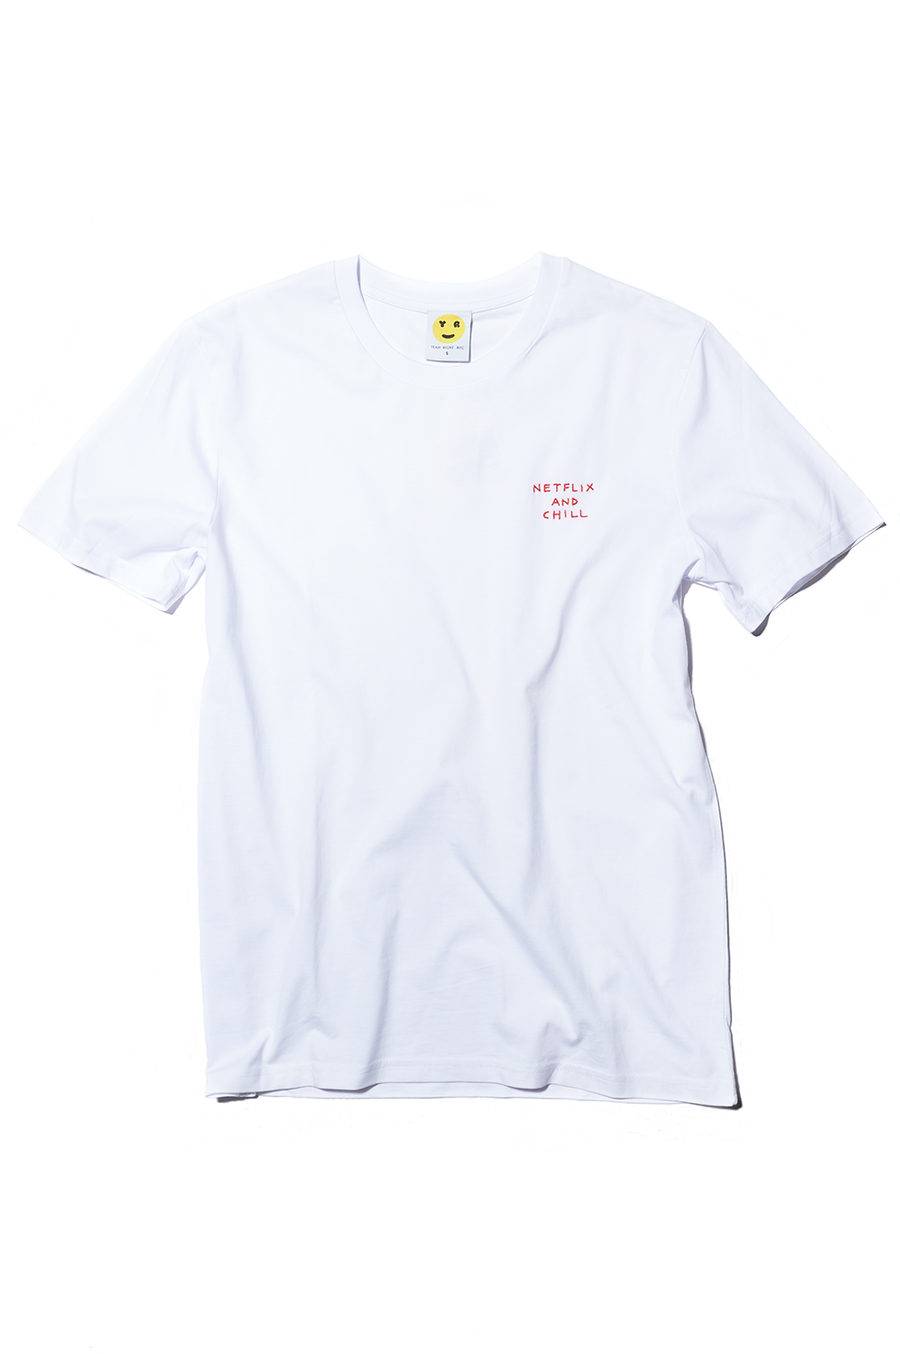 White Crewneck Embroidered Netflix and Chill Tee